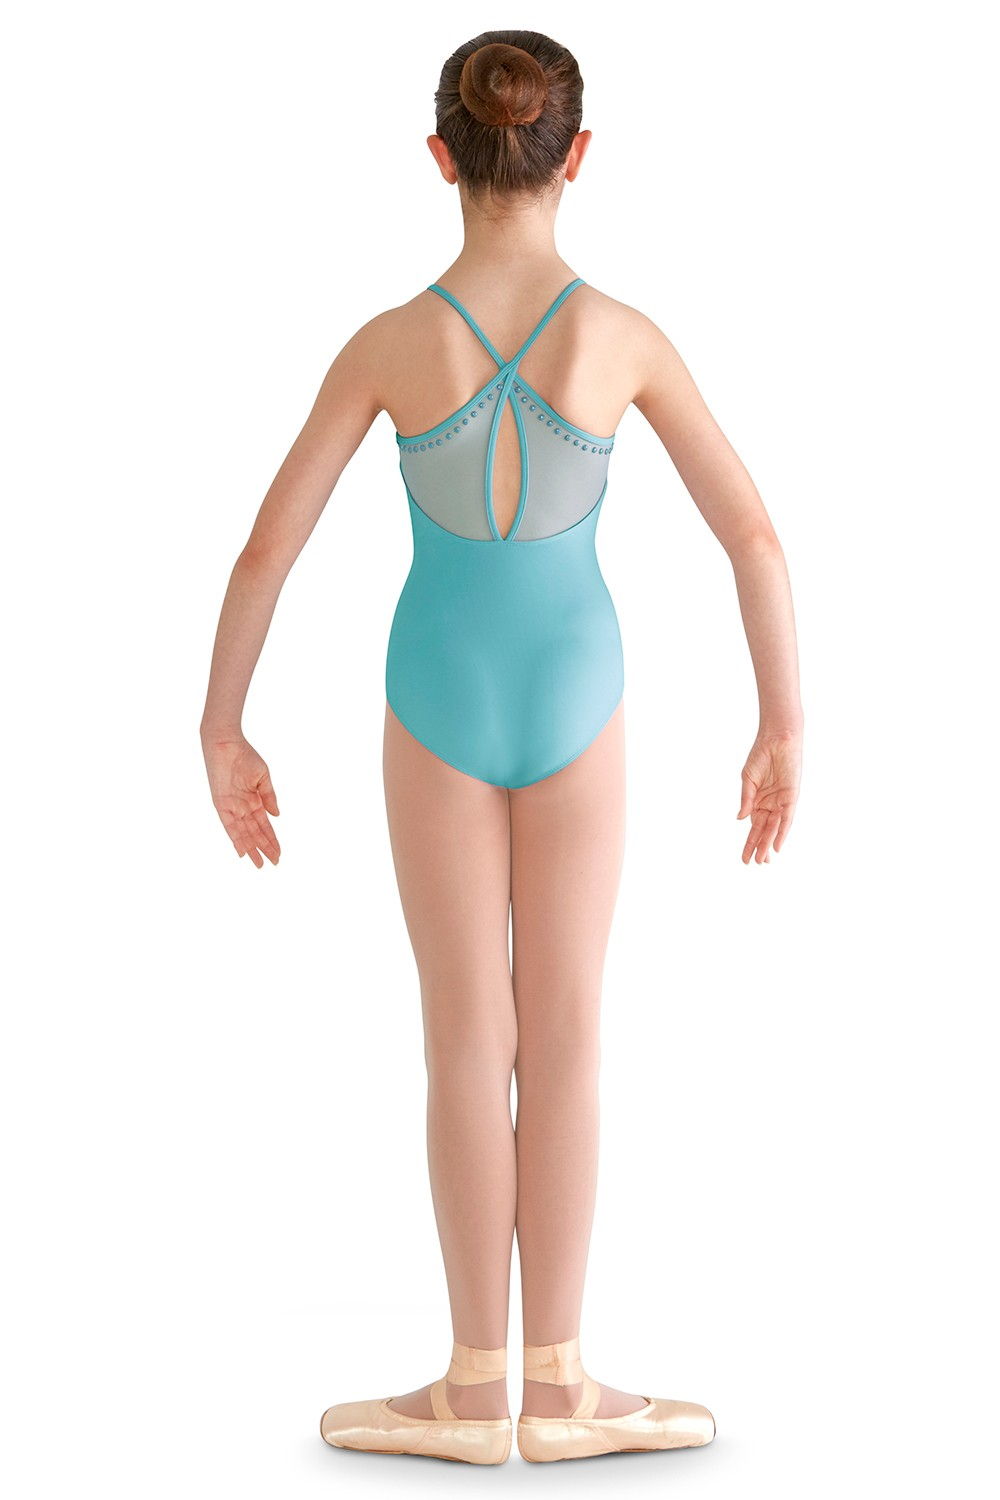 Carci Children's Dance Leotards